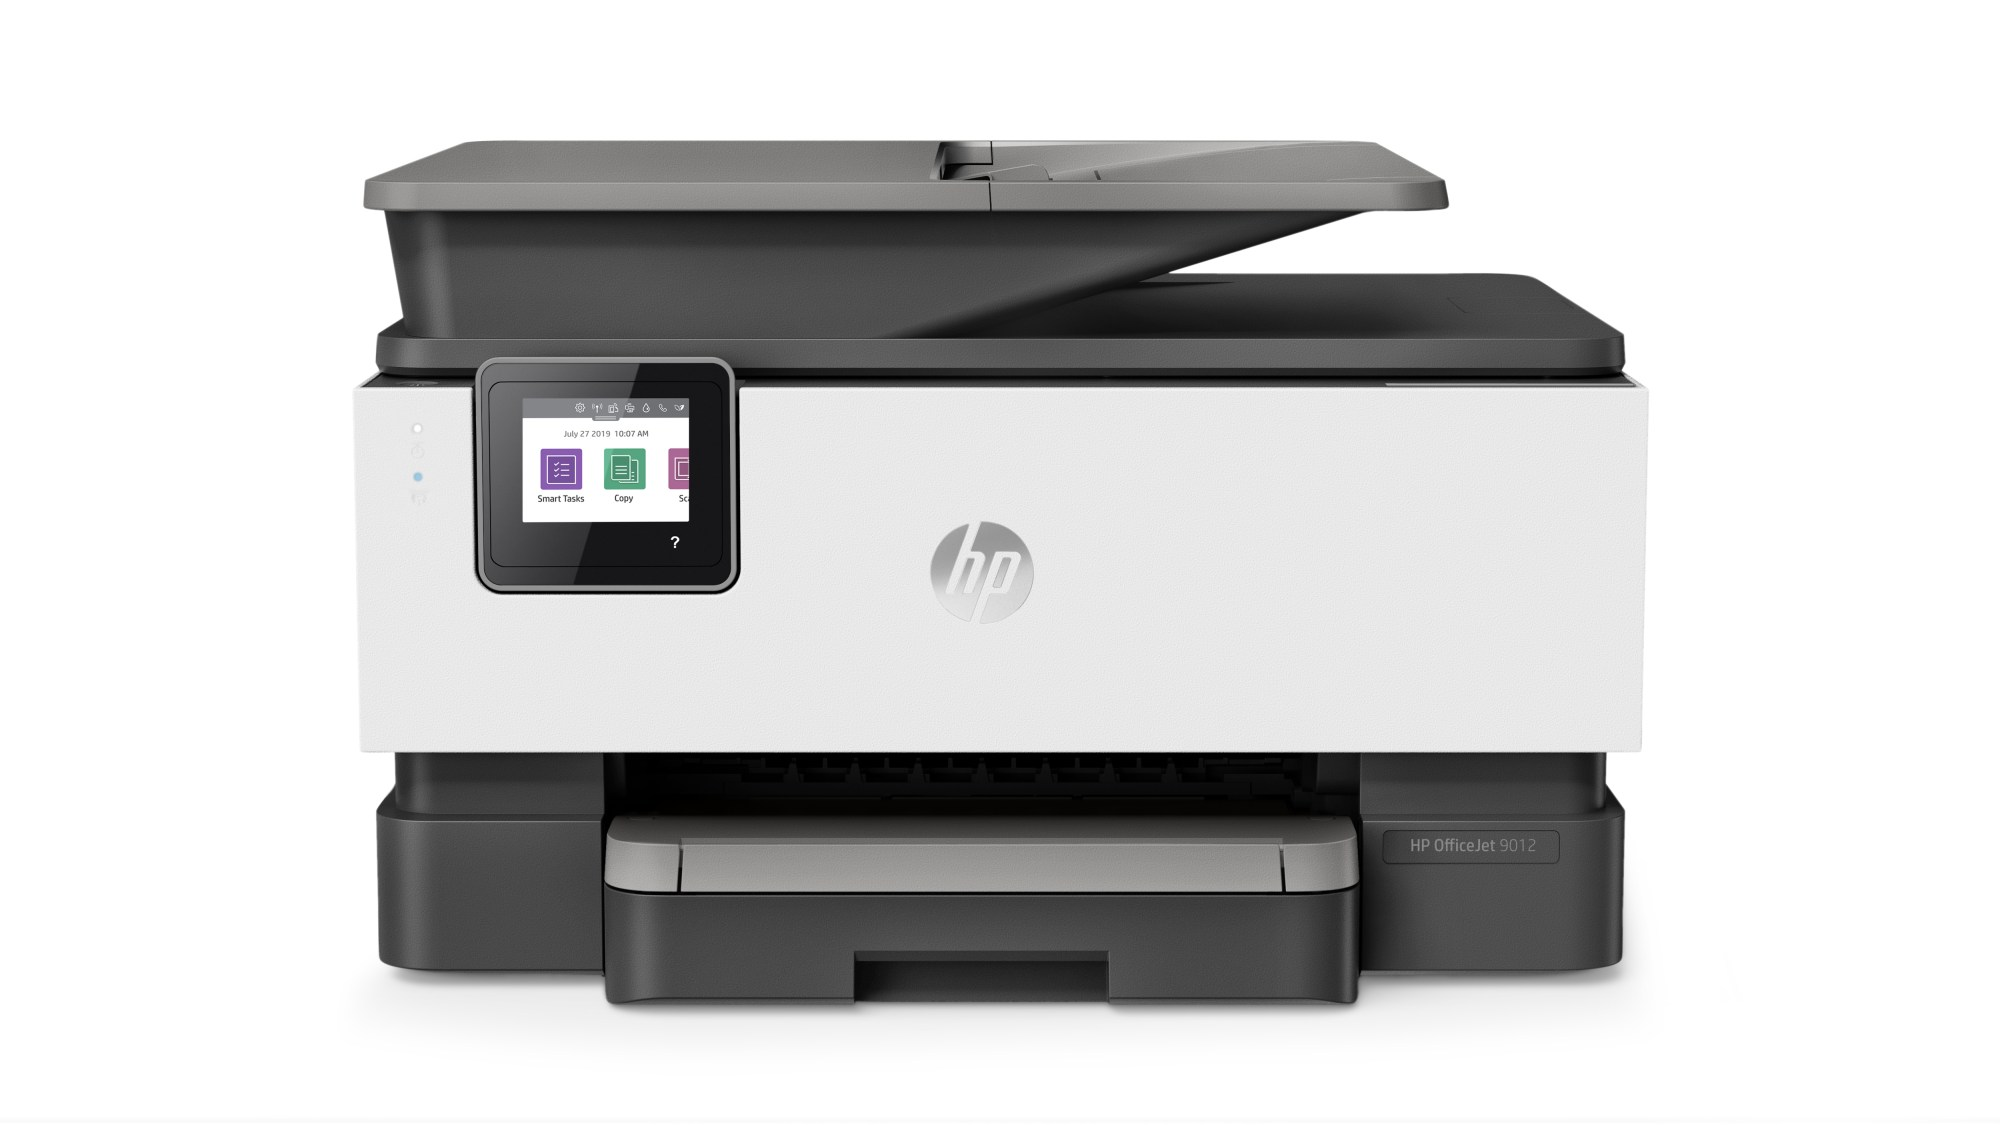 hight resolution of hp officejet 9012 all in one wireless printer with smart tasks for smart office productivity 1kr44a walmart com